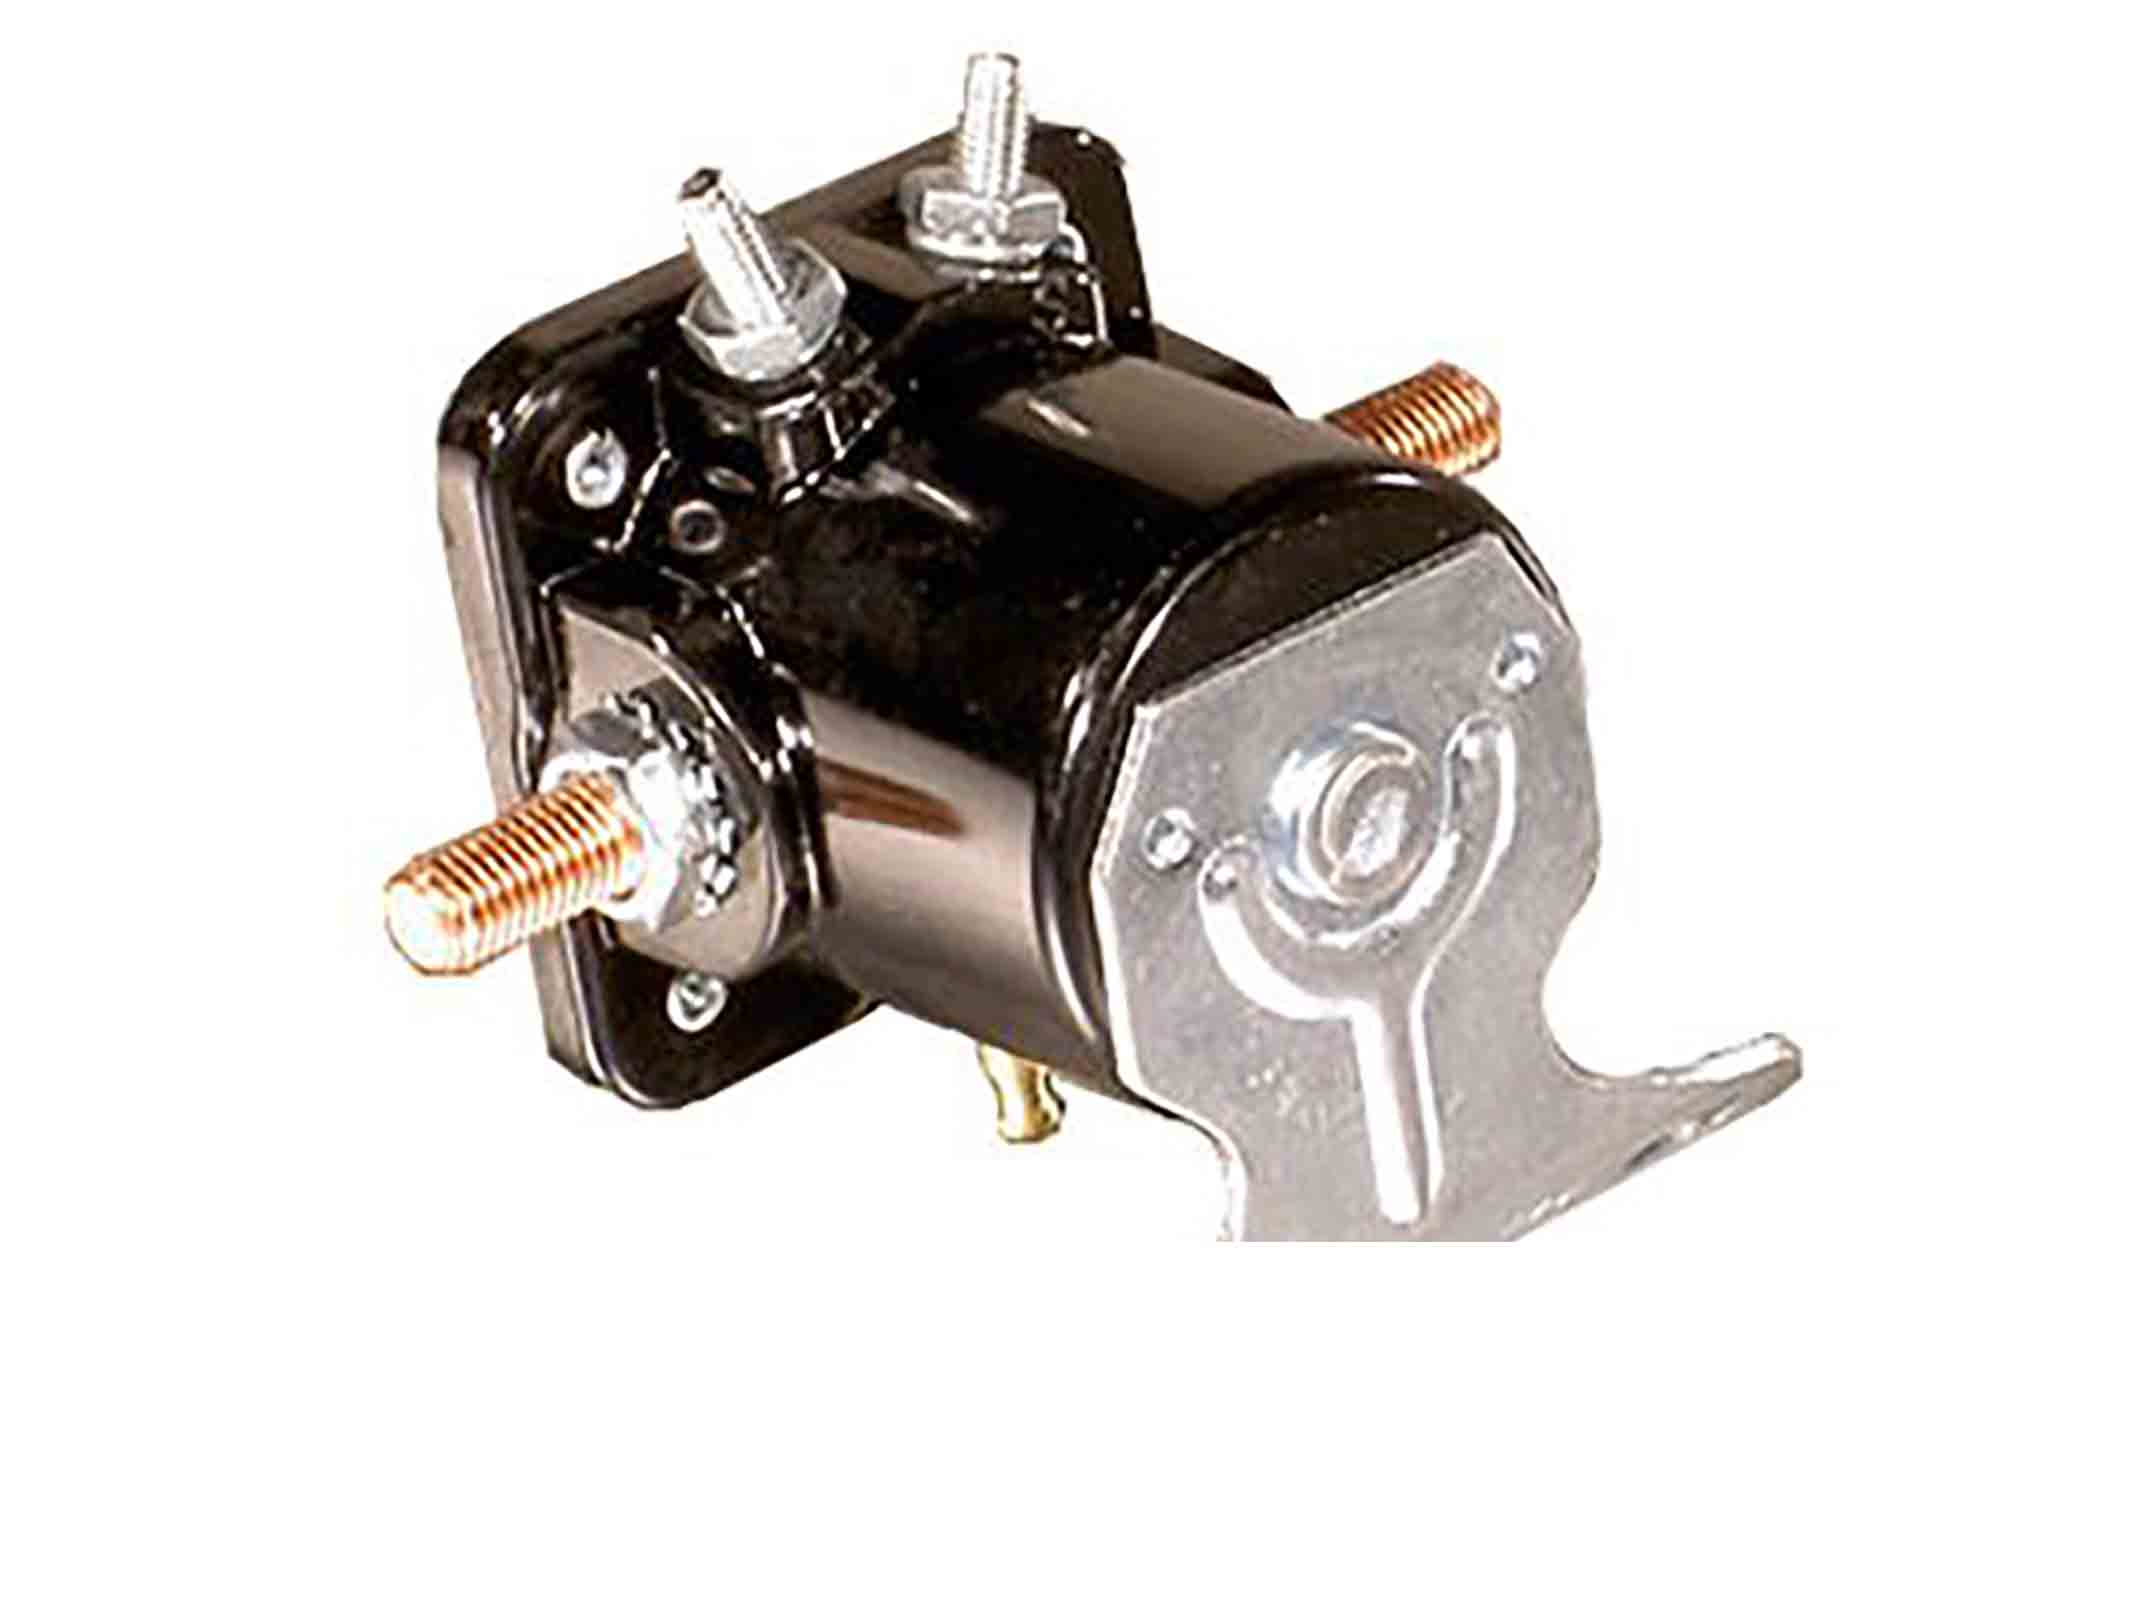 Solenoide wrangler yj 87 90 4.2 l. autom. ricambi jeep